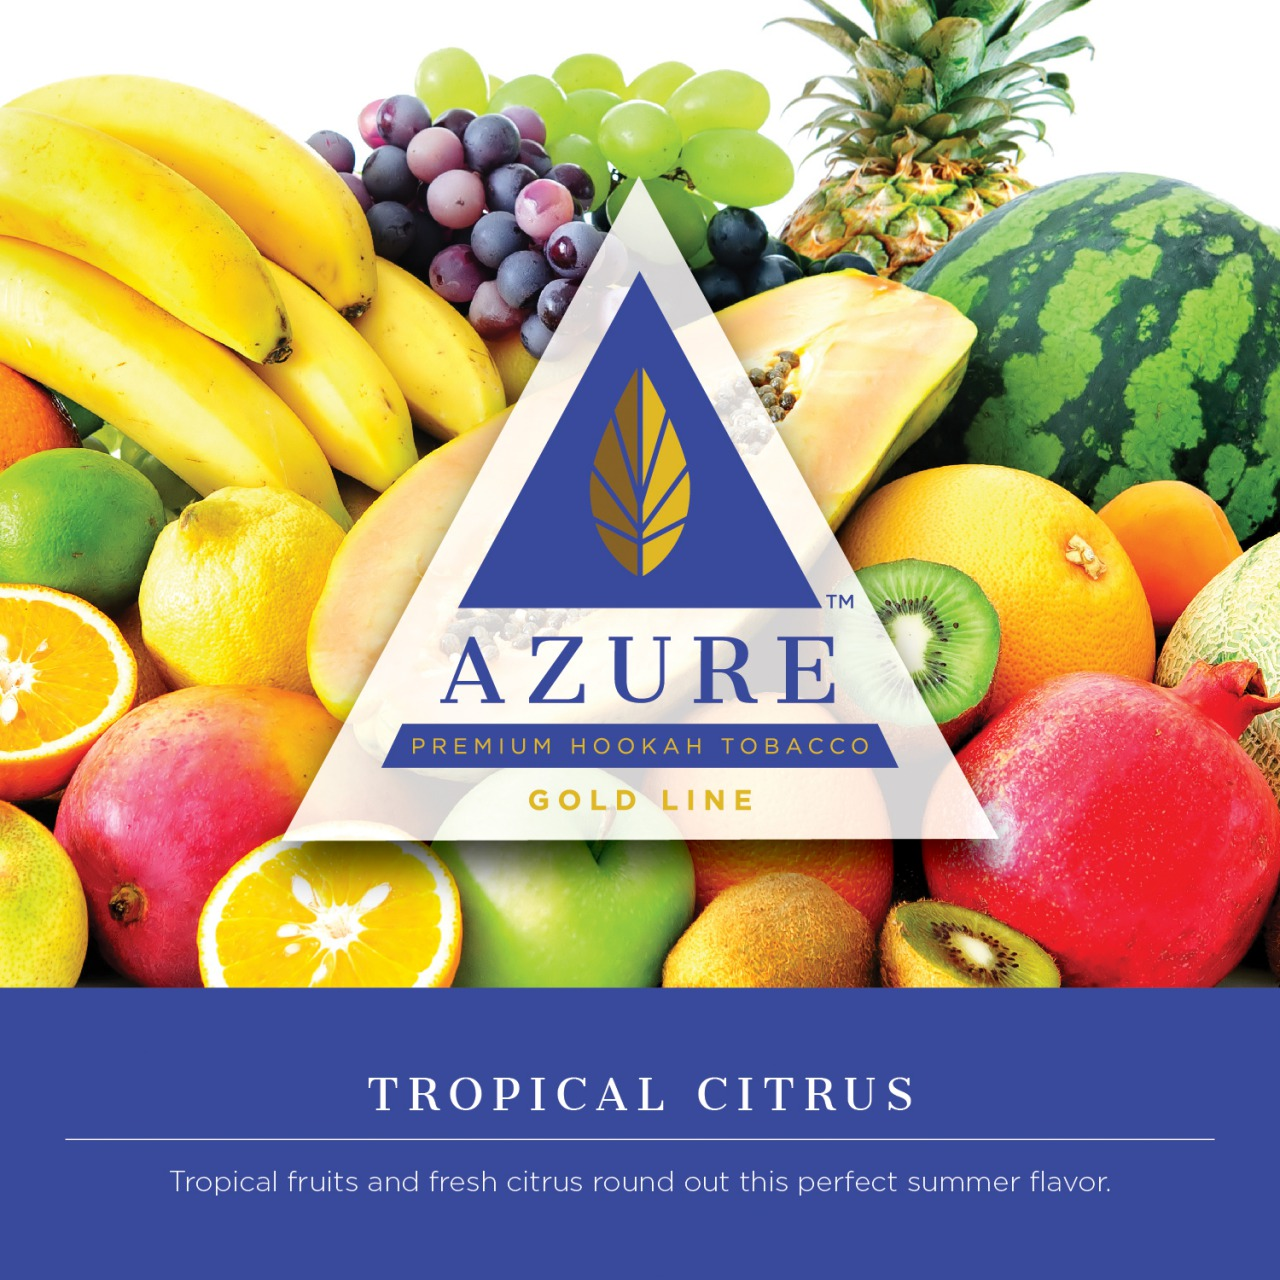 Azure Gold / Tropical Citrus(Melon系:Lemon系=5:2ぐらいのMix、Lemon系の酸味が絶妙なアクセント)